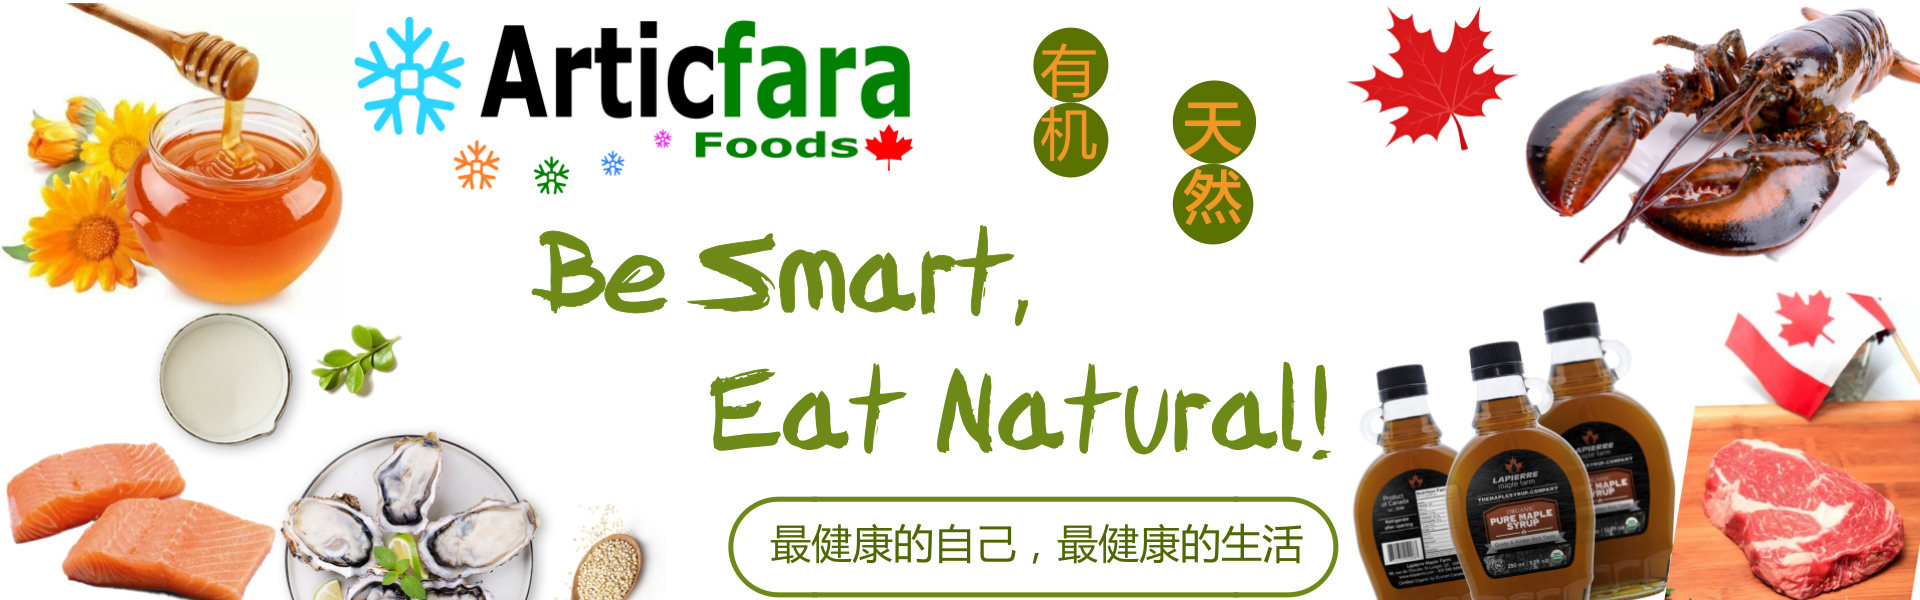 articfara slogan